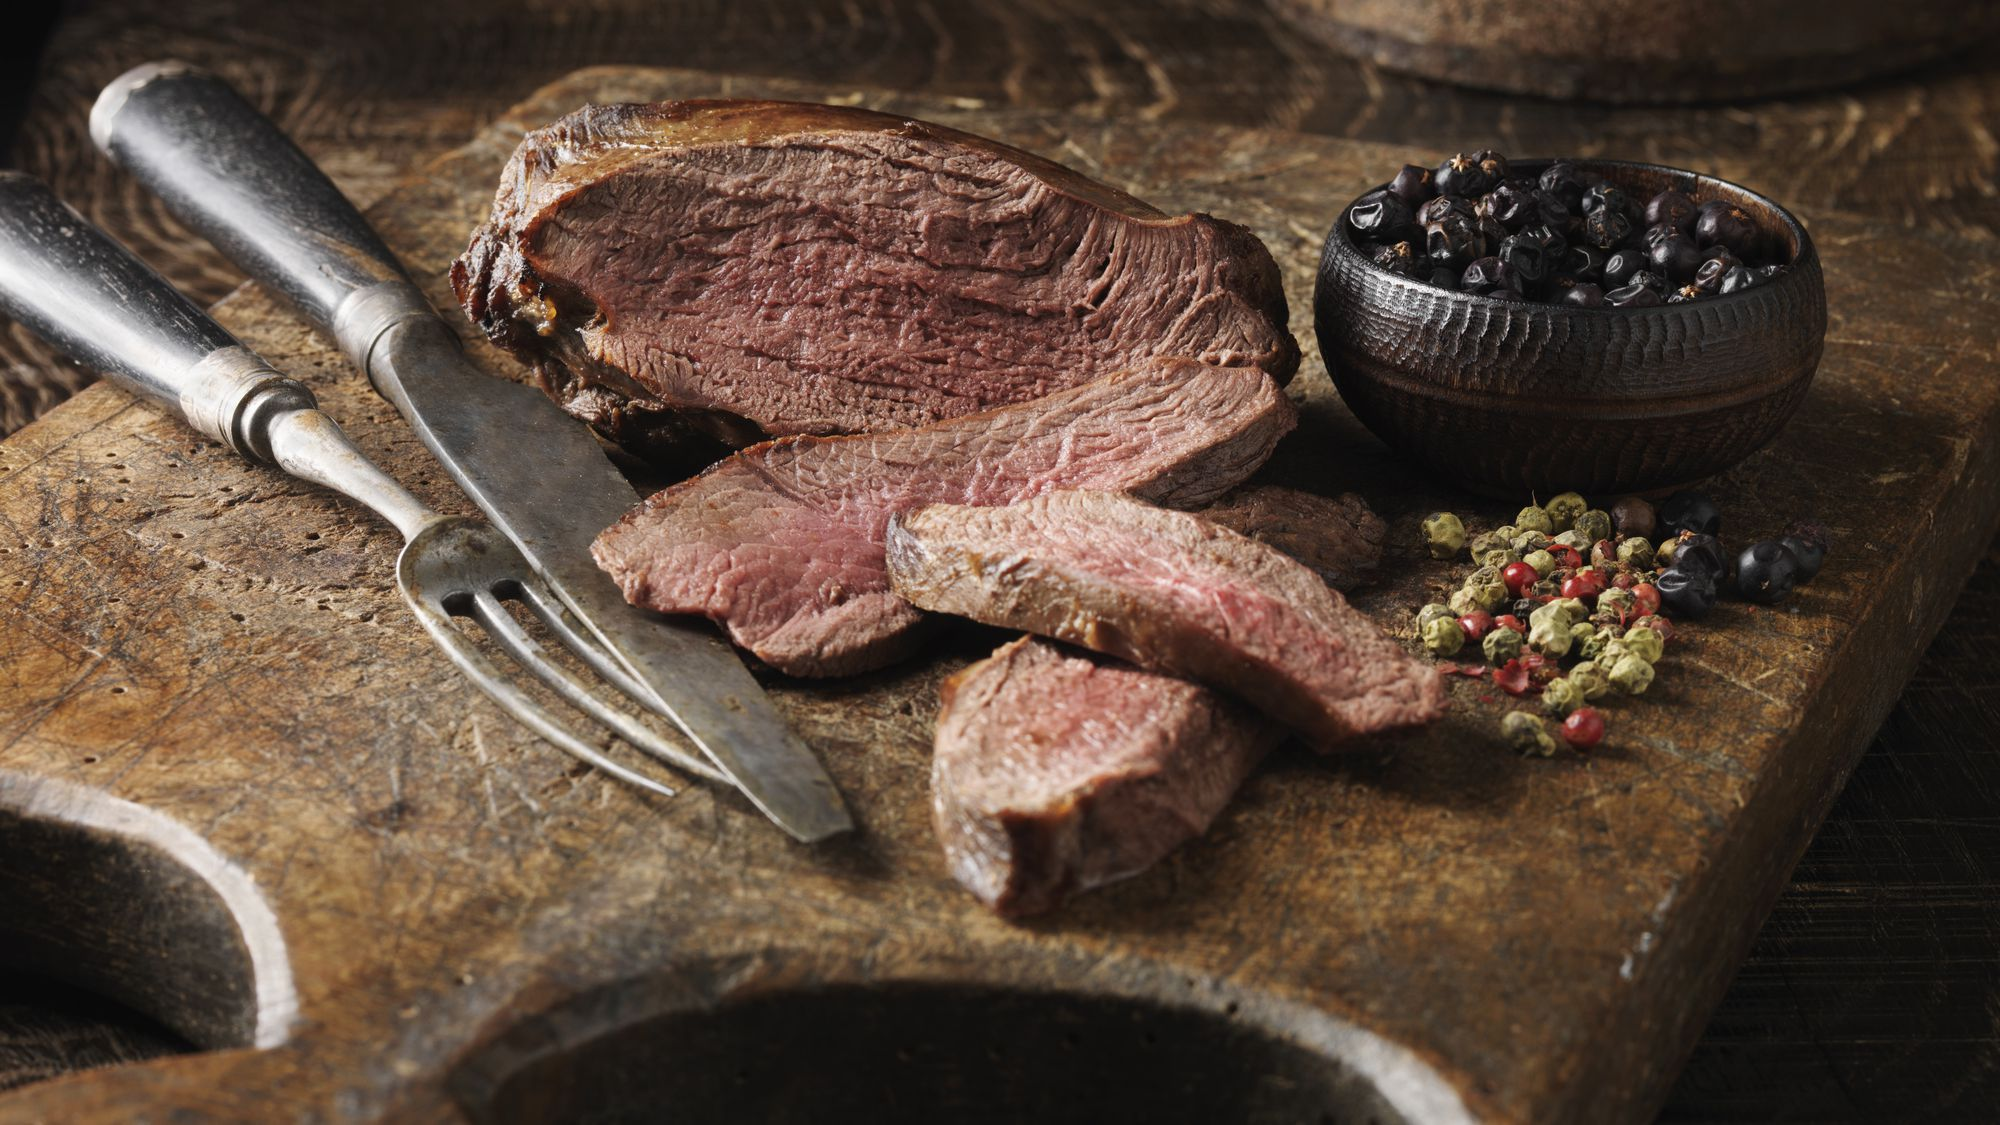 The Best Herbs to Season Venison Dishes